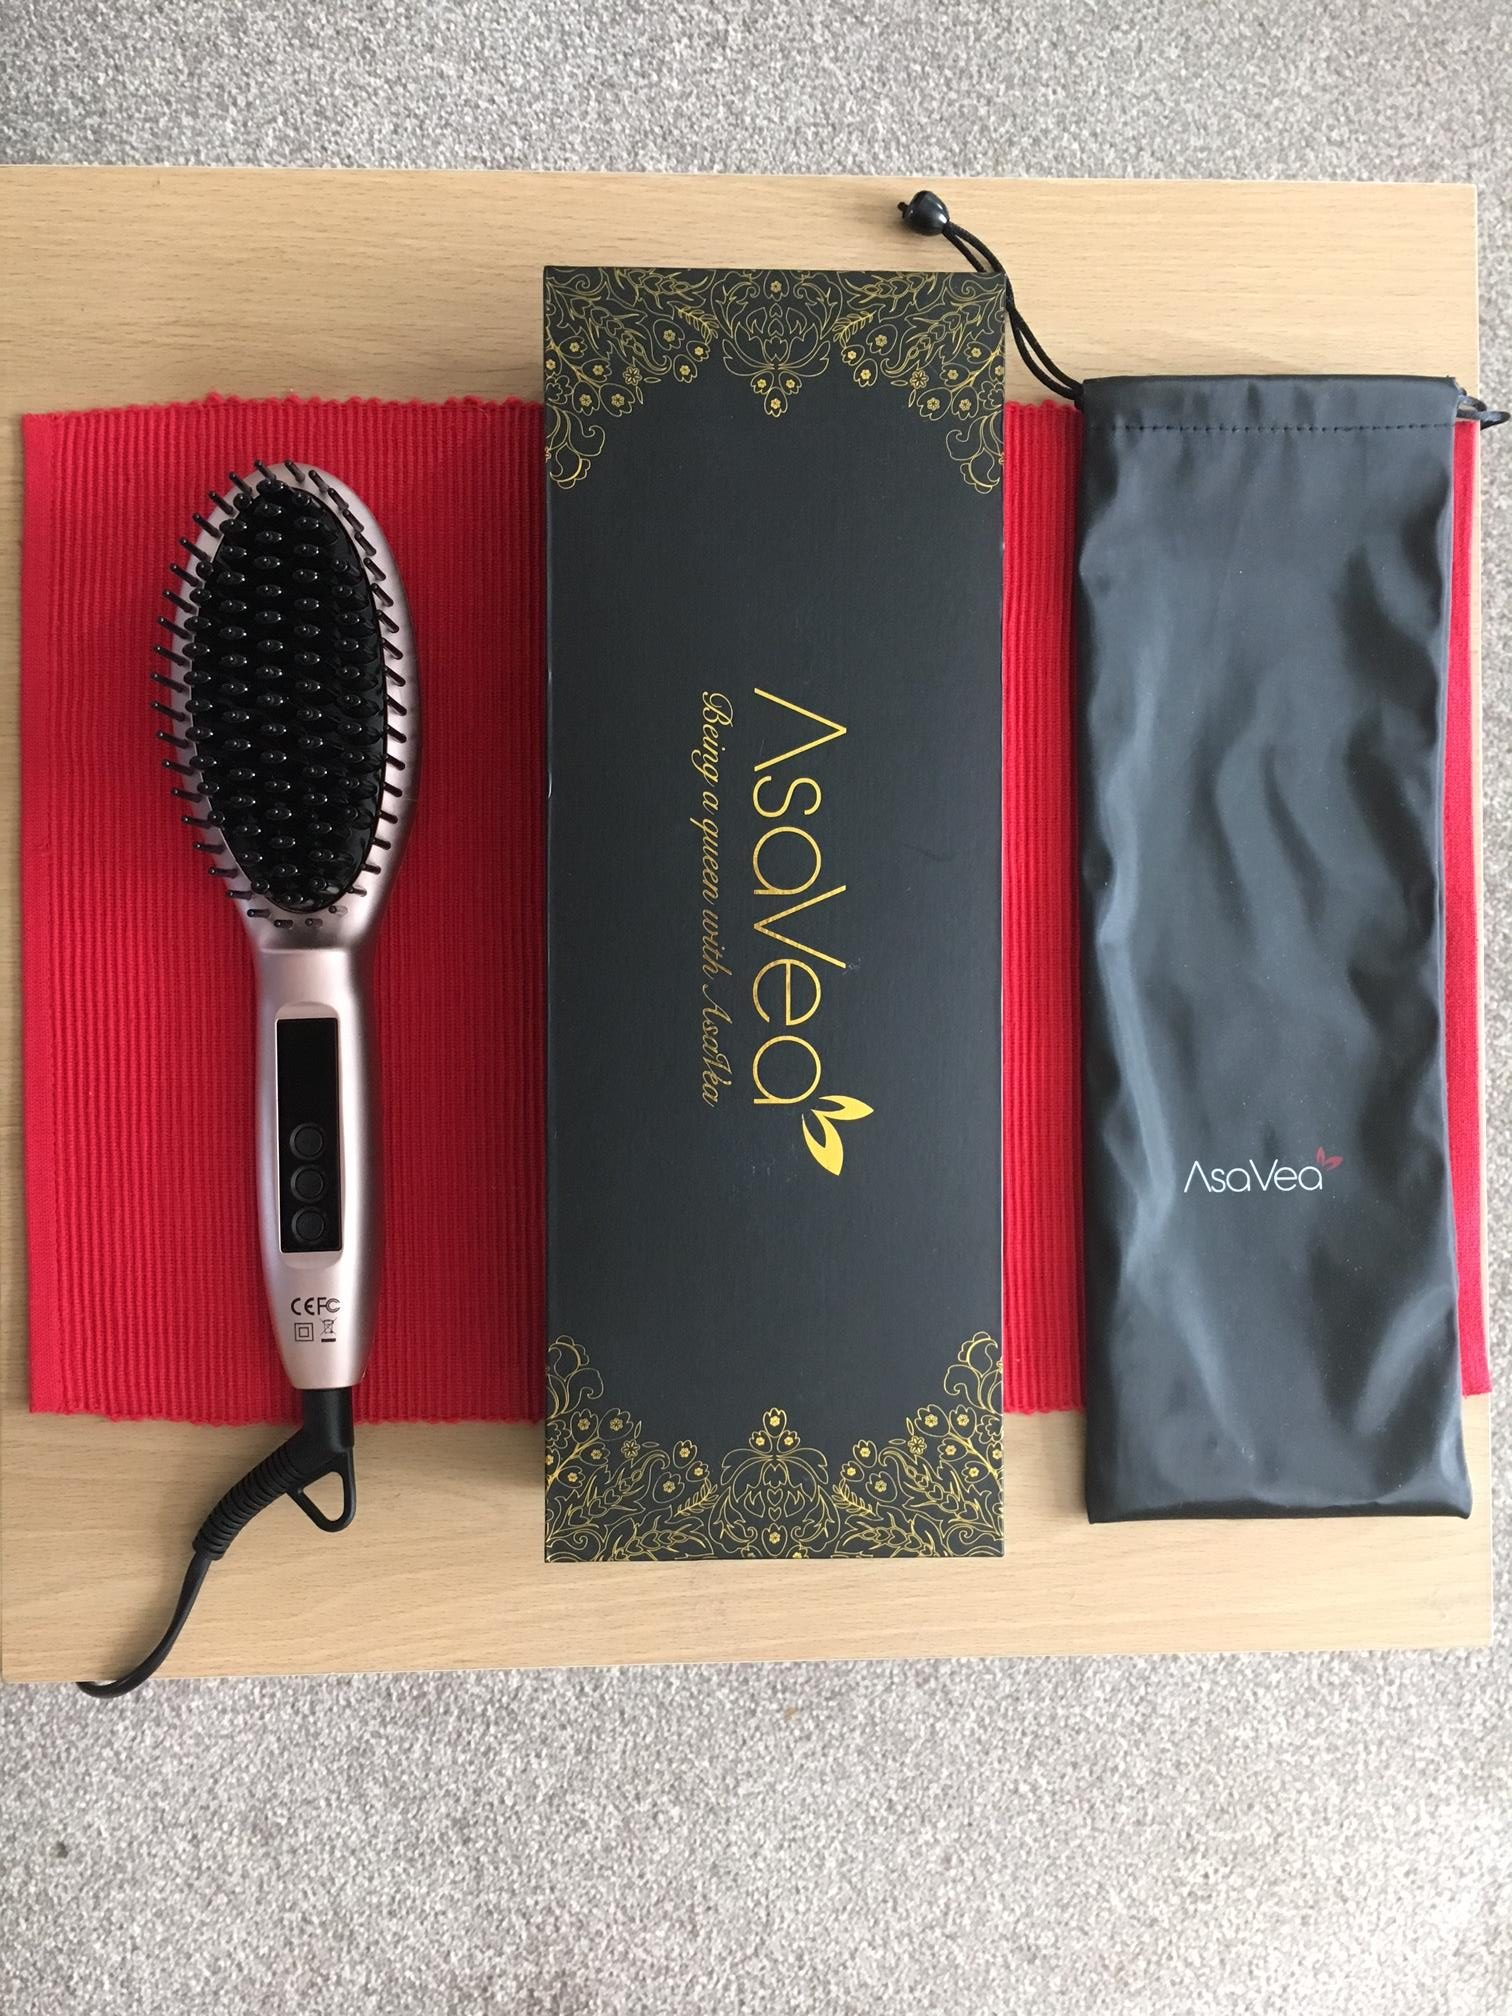 asavea straightening brush